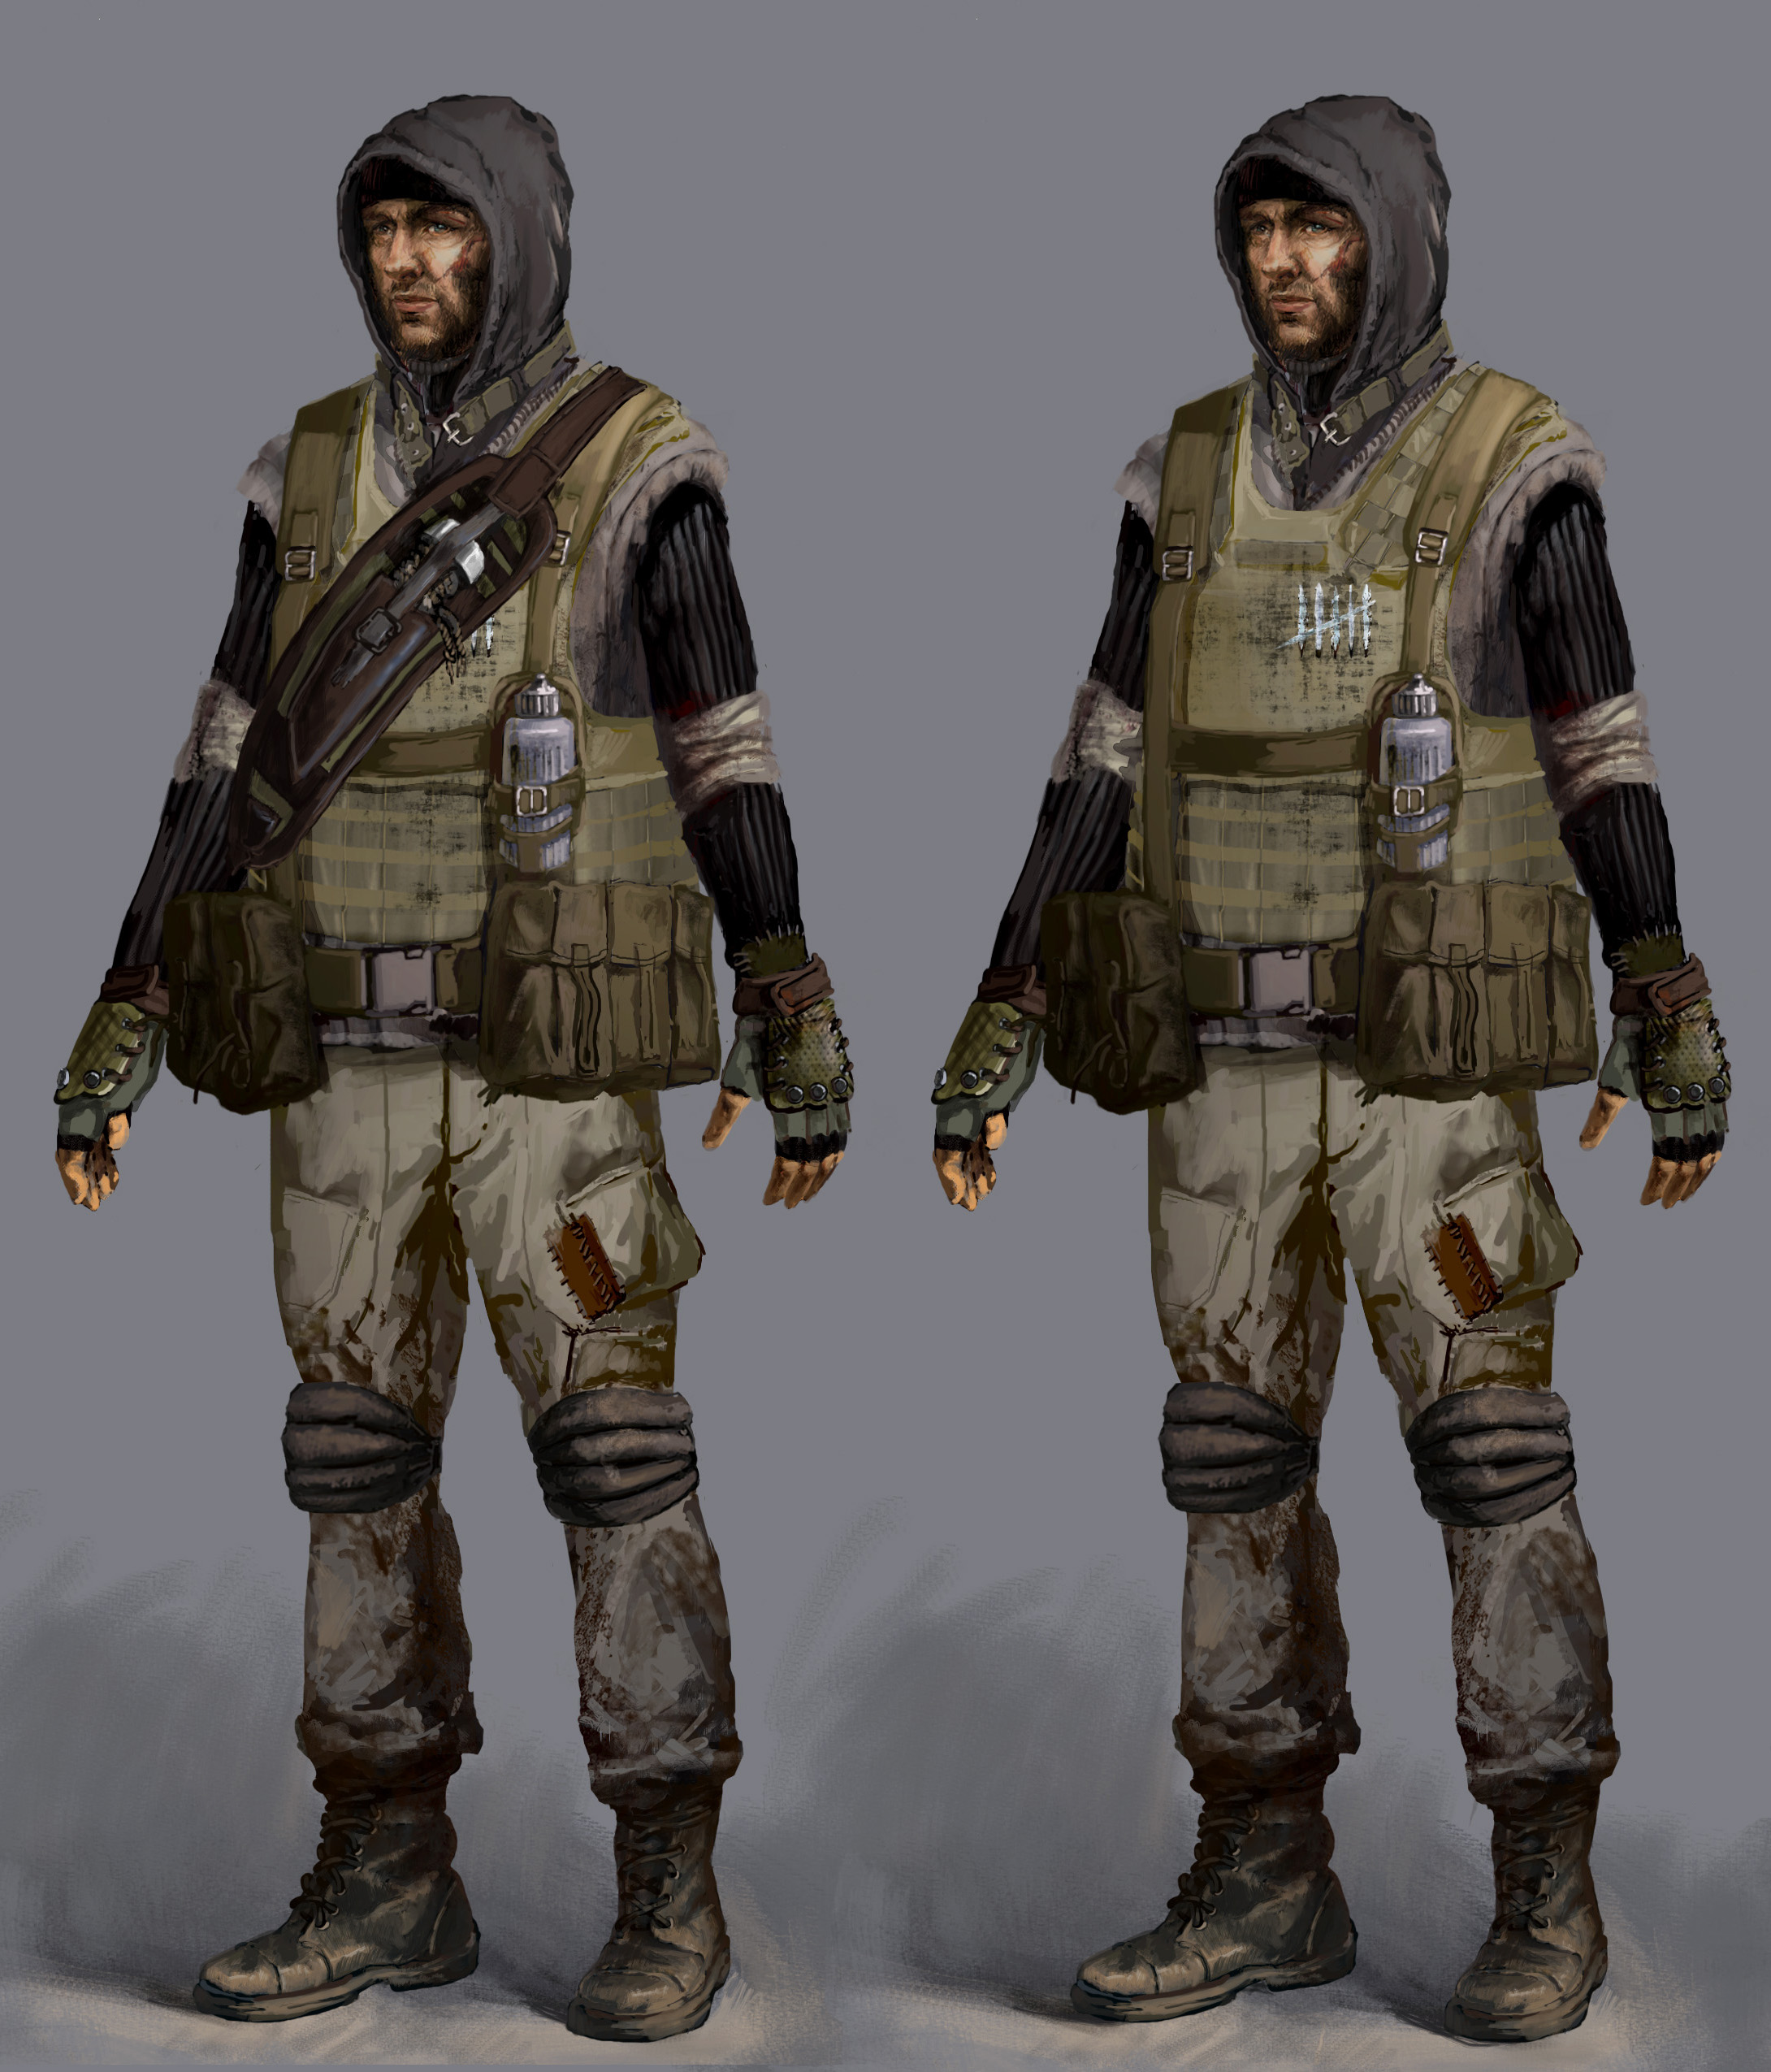 Apocalyptic Soldier Pics: Post-Apocalyptic Soldiers On Pinterest